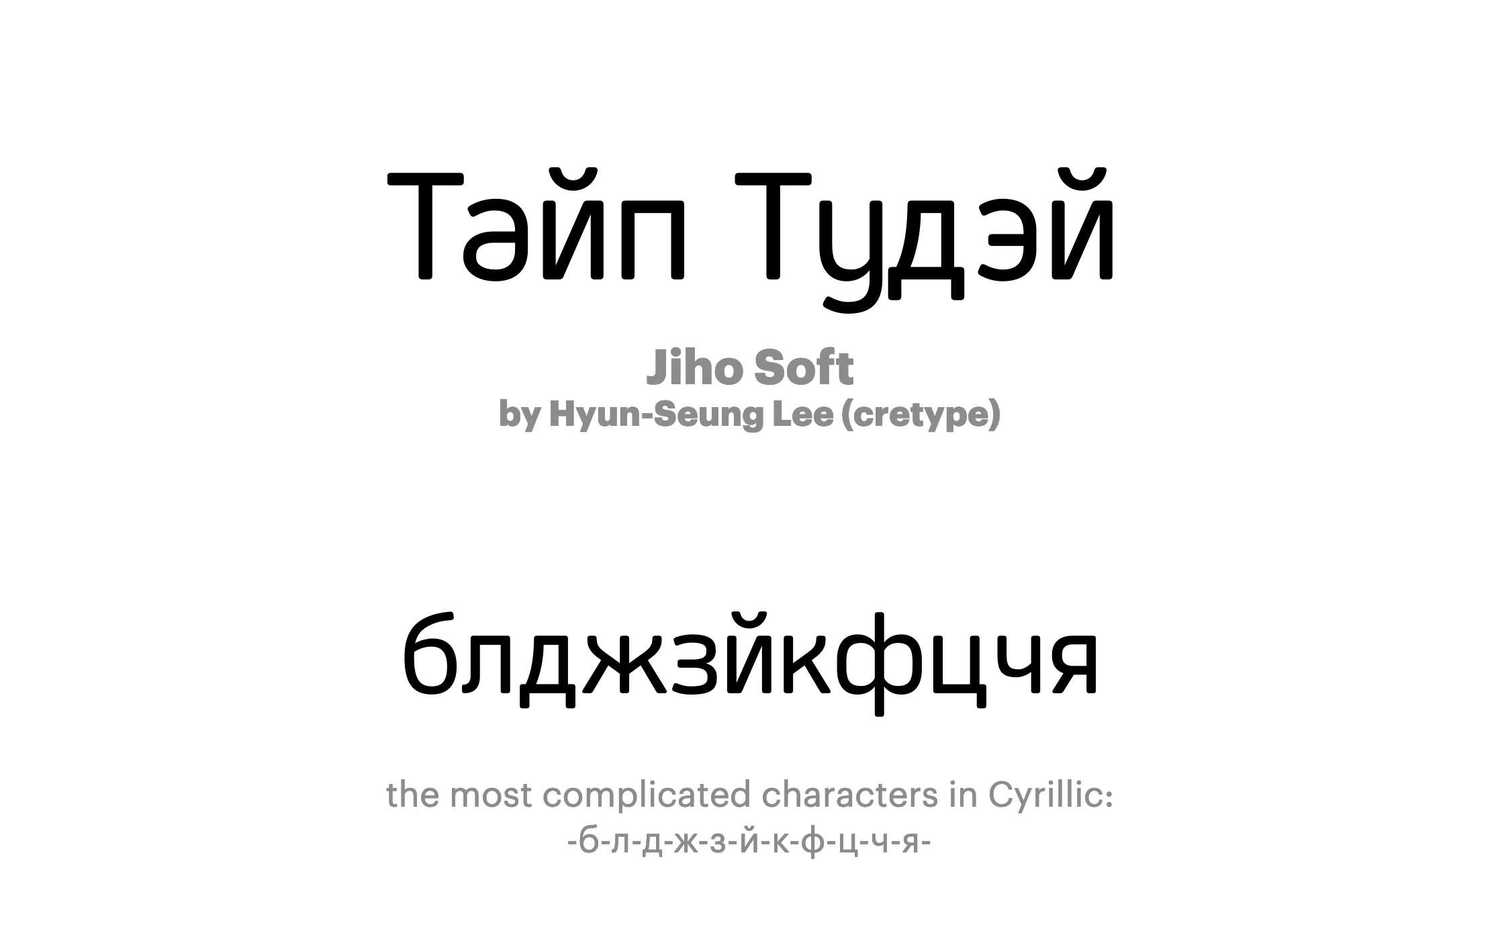 Jiho-Soft-by-Hyun-Seung-Lee-(cretype)